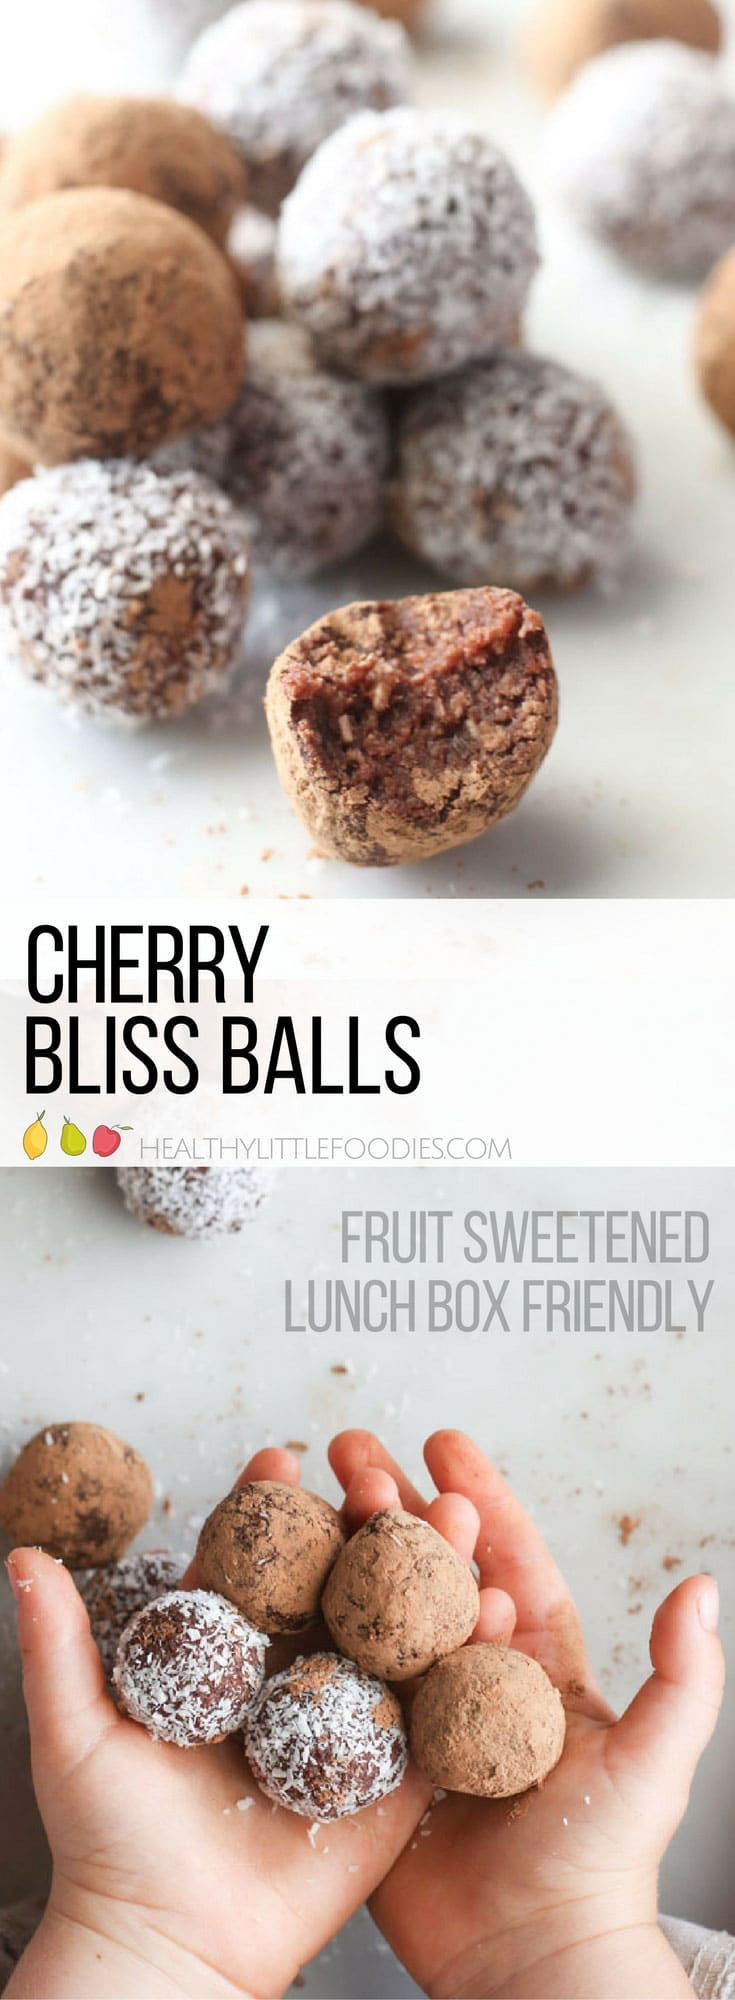 Cherry bliss balls. Fresh cherries mixed with oats, coconut, dates and cacao. Nut free making them perfect for the lunchbox. Easily adaptable to suit tastes.   #blissballs #lunchboxideas #nutfree via @hlittlefoodies